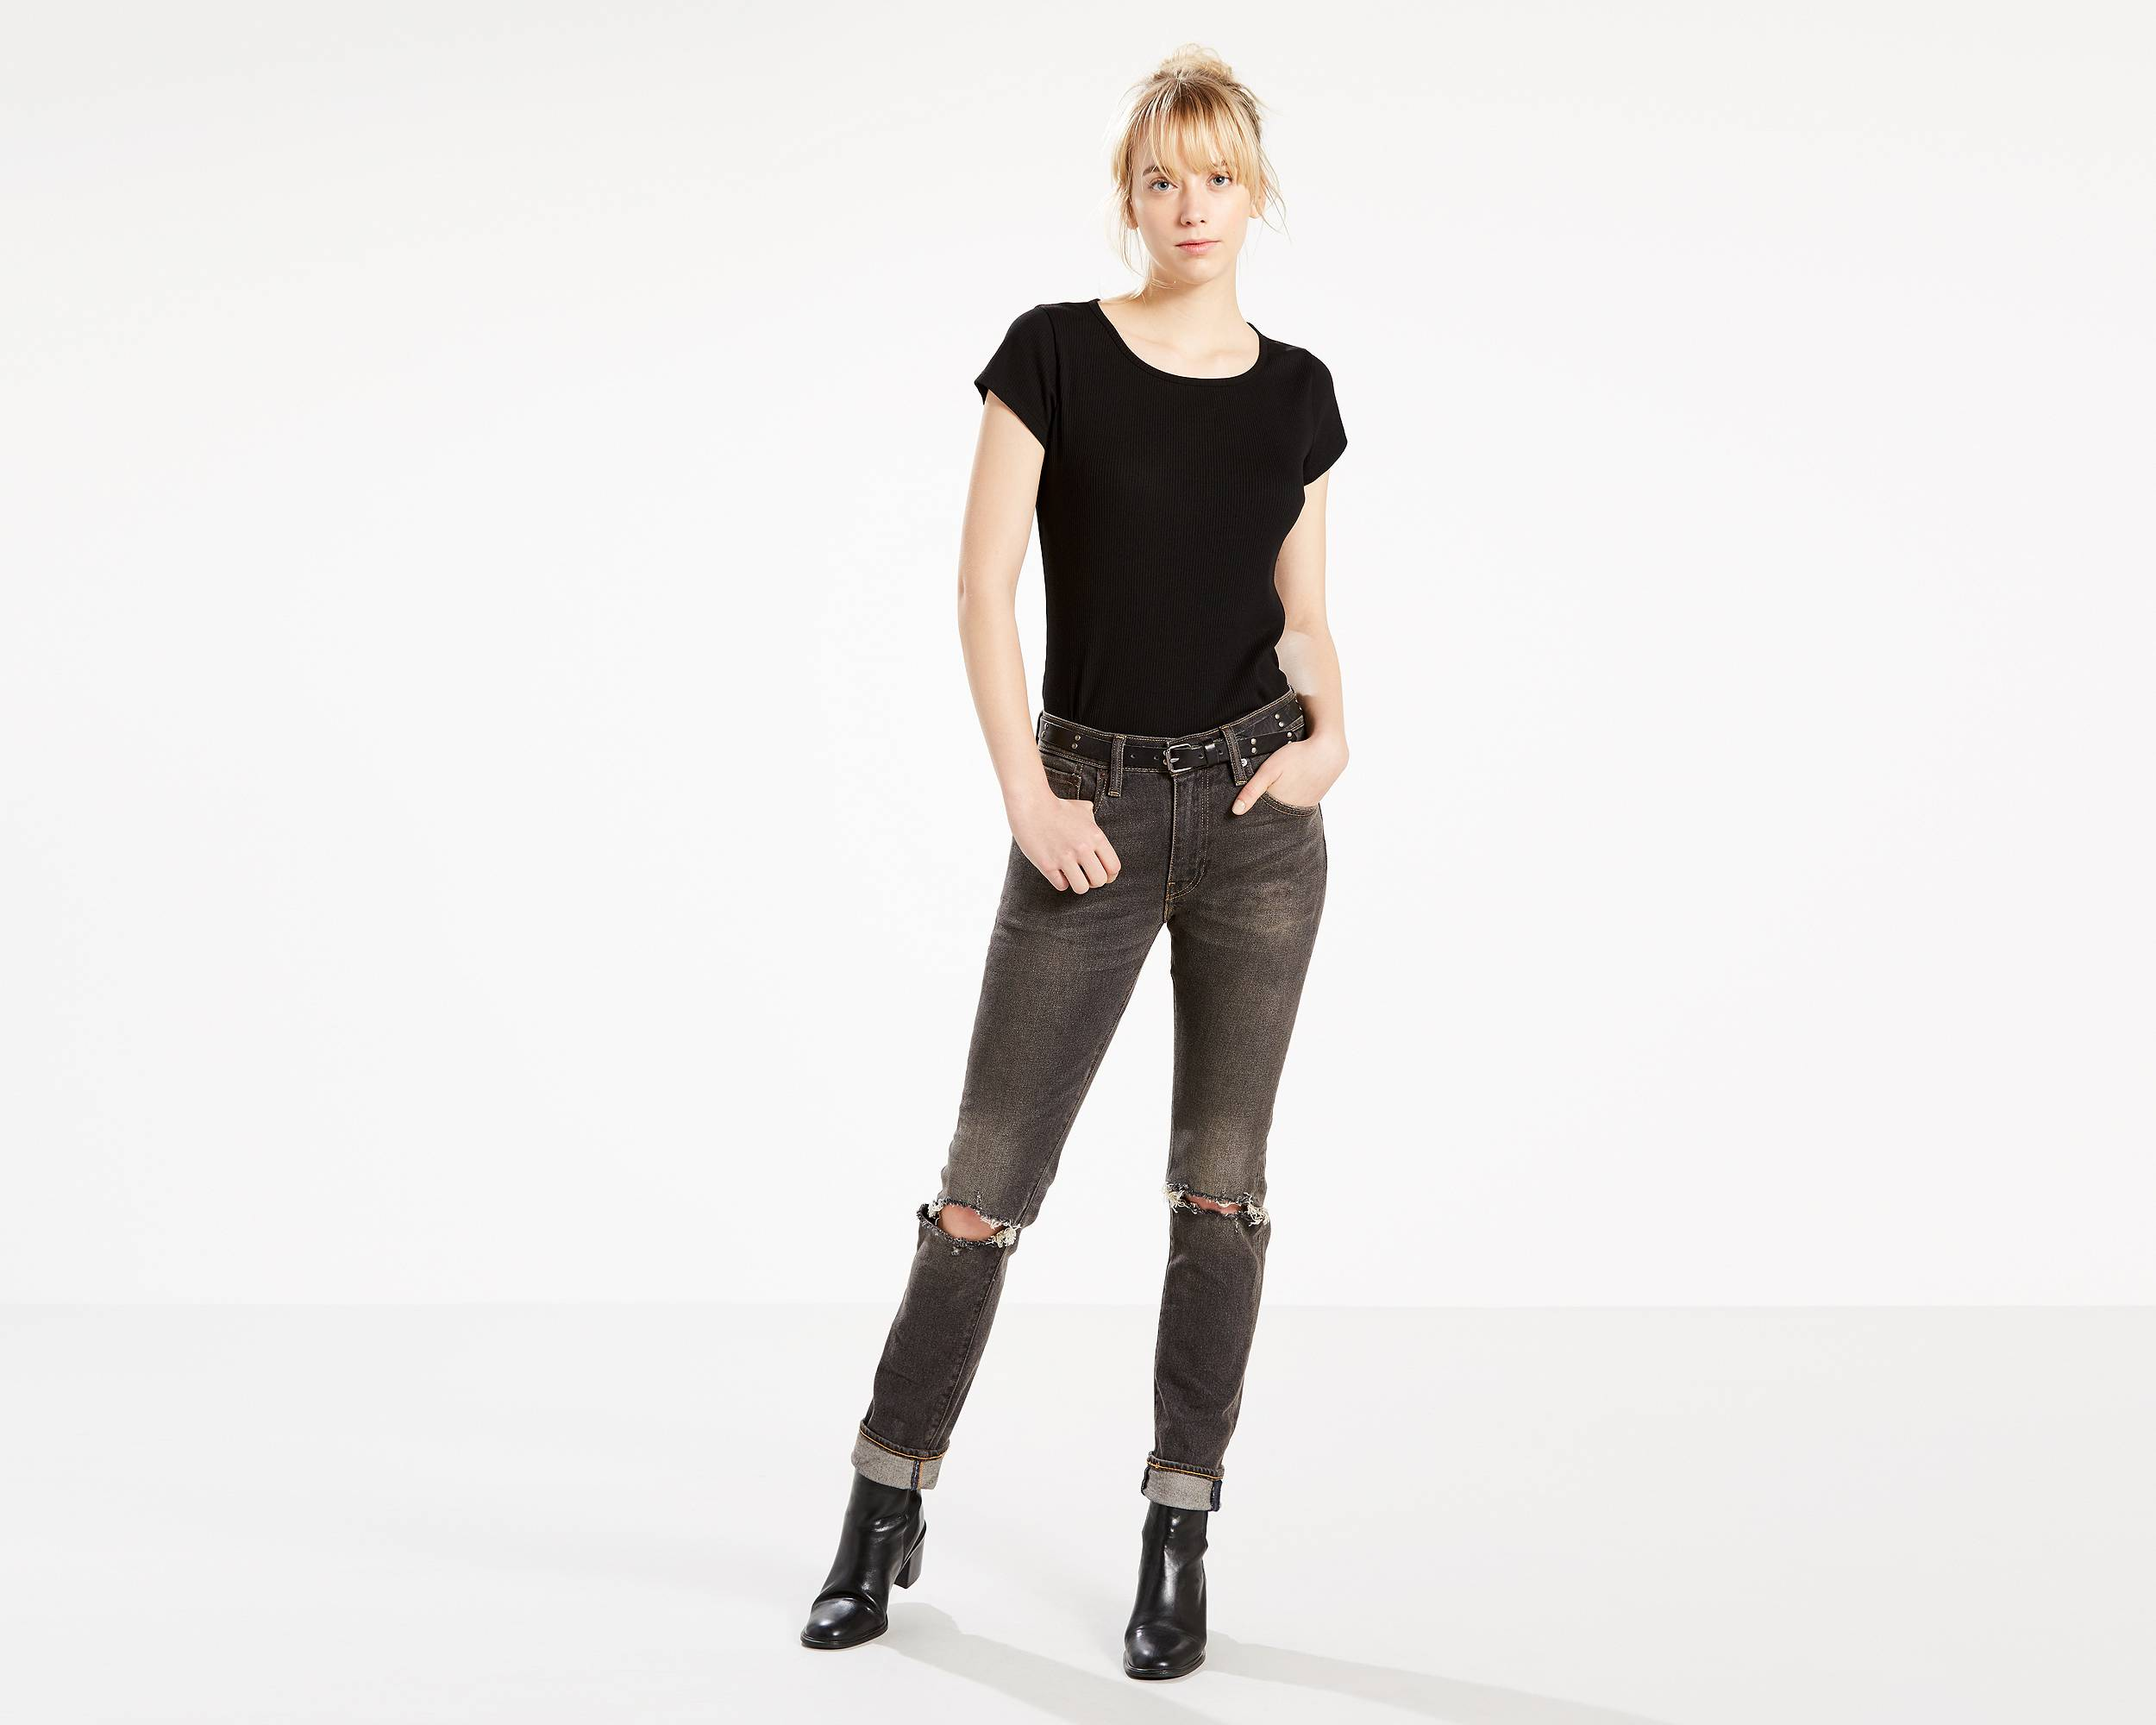 283420006 front pdp?$2500x2000$ discount women's clothing & jeans women's clearance levi's,Womens Clothing Discount